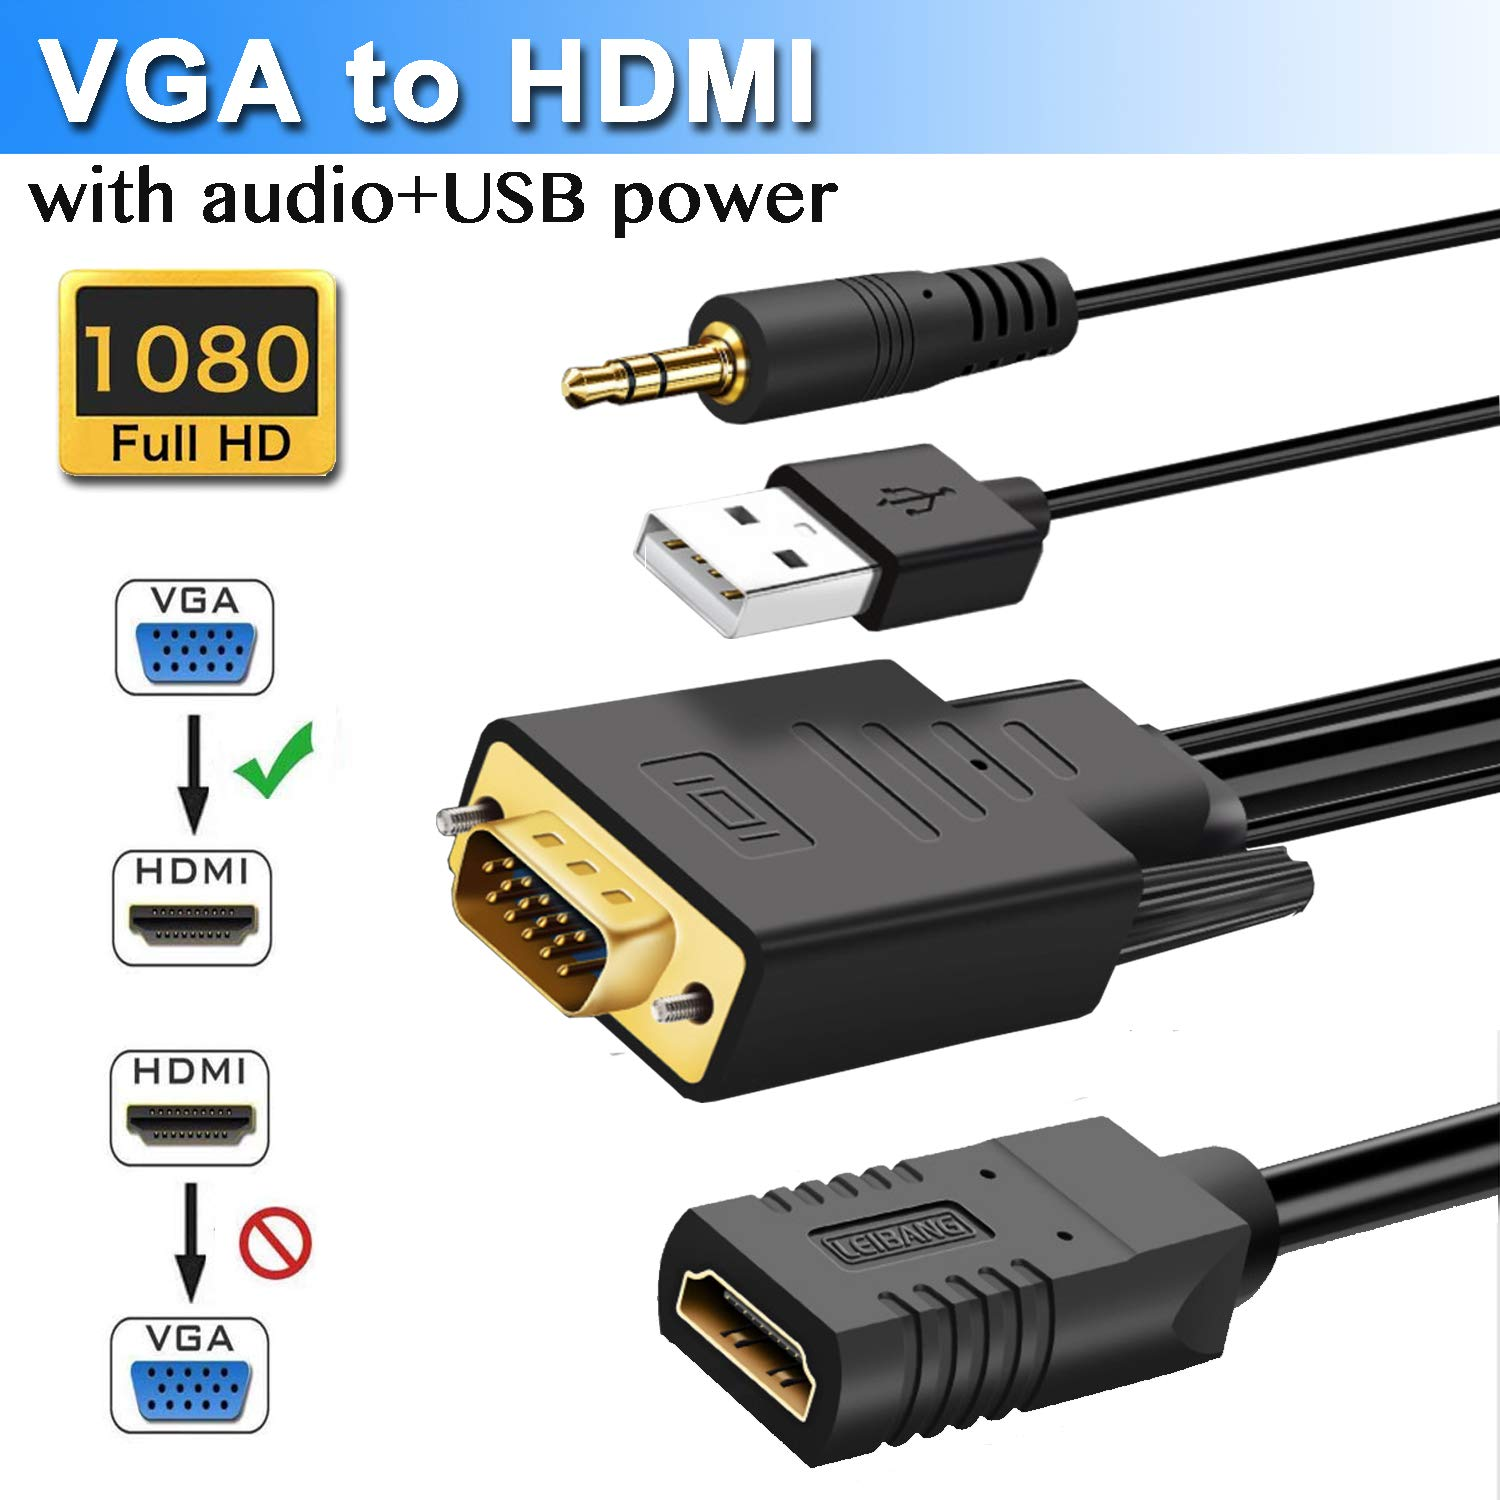 VGA to HDMI Adapter Cable with Audio, VGA to HDMI Converter Cable for Connecting Laptop or Desktop with VGA(D-Sub,HD 15-pin) to Monitor or HDTV with HDMI (HDMI Female) by Elecable